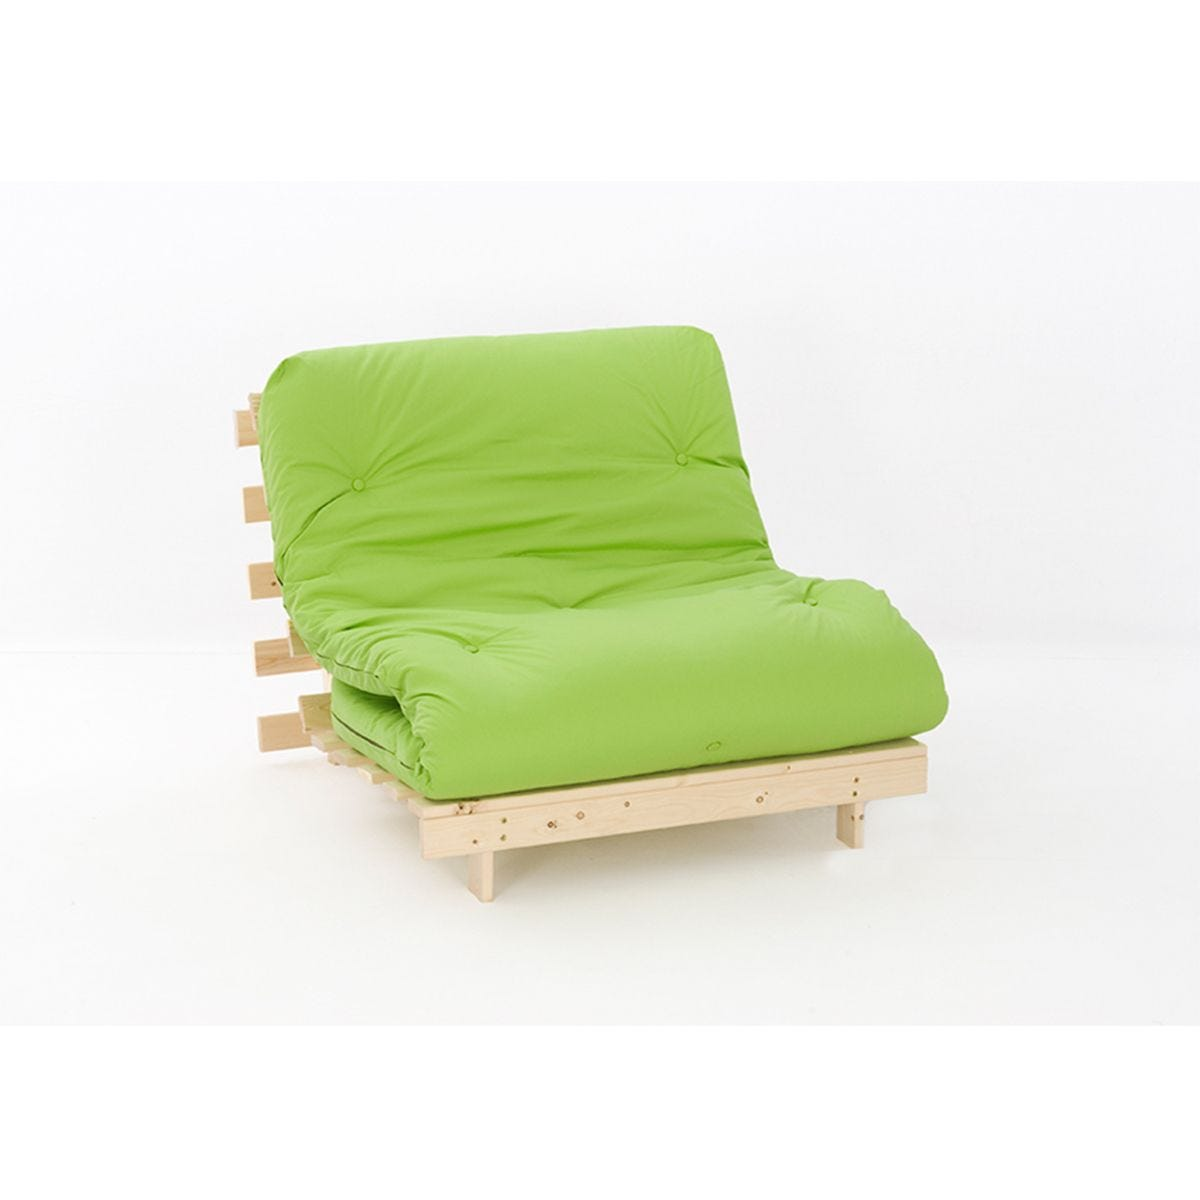 Ayr Sofa Bed Single Set With Tufted Mattress - Lime